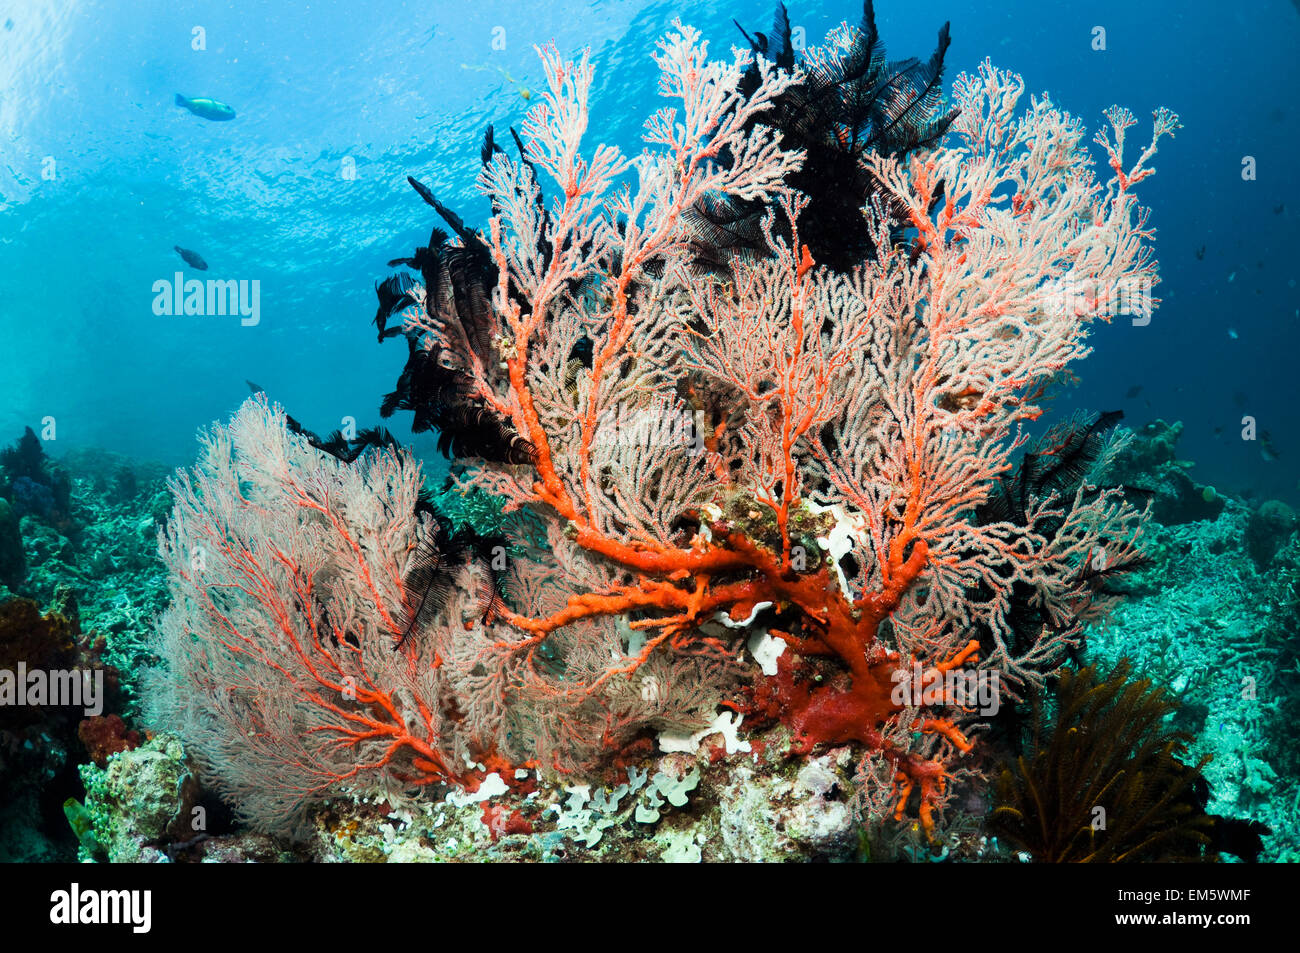 Gorgonian or sea fan with featherstars.  Misool, Raja Ampat, West Papua, Indonesia. Stock Photo